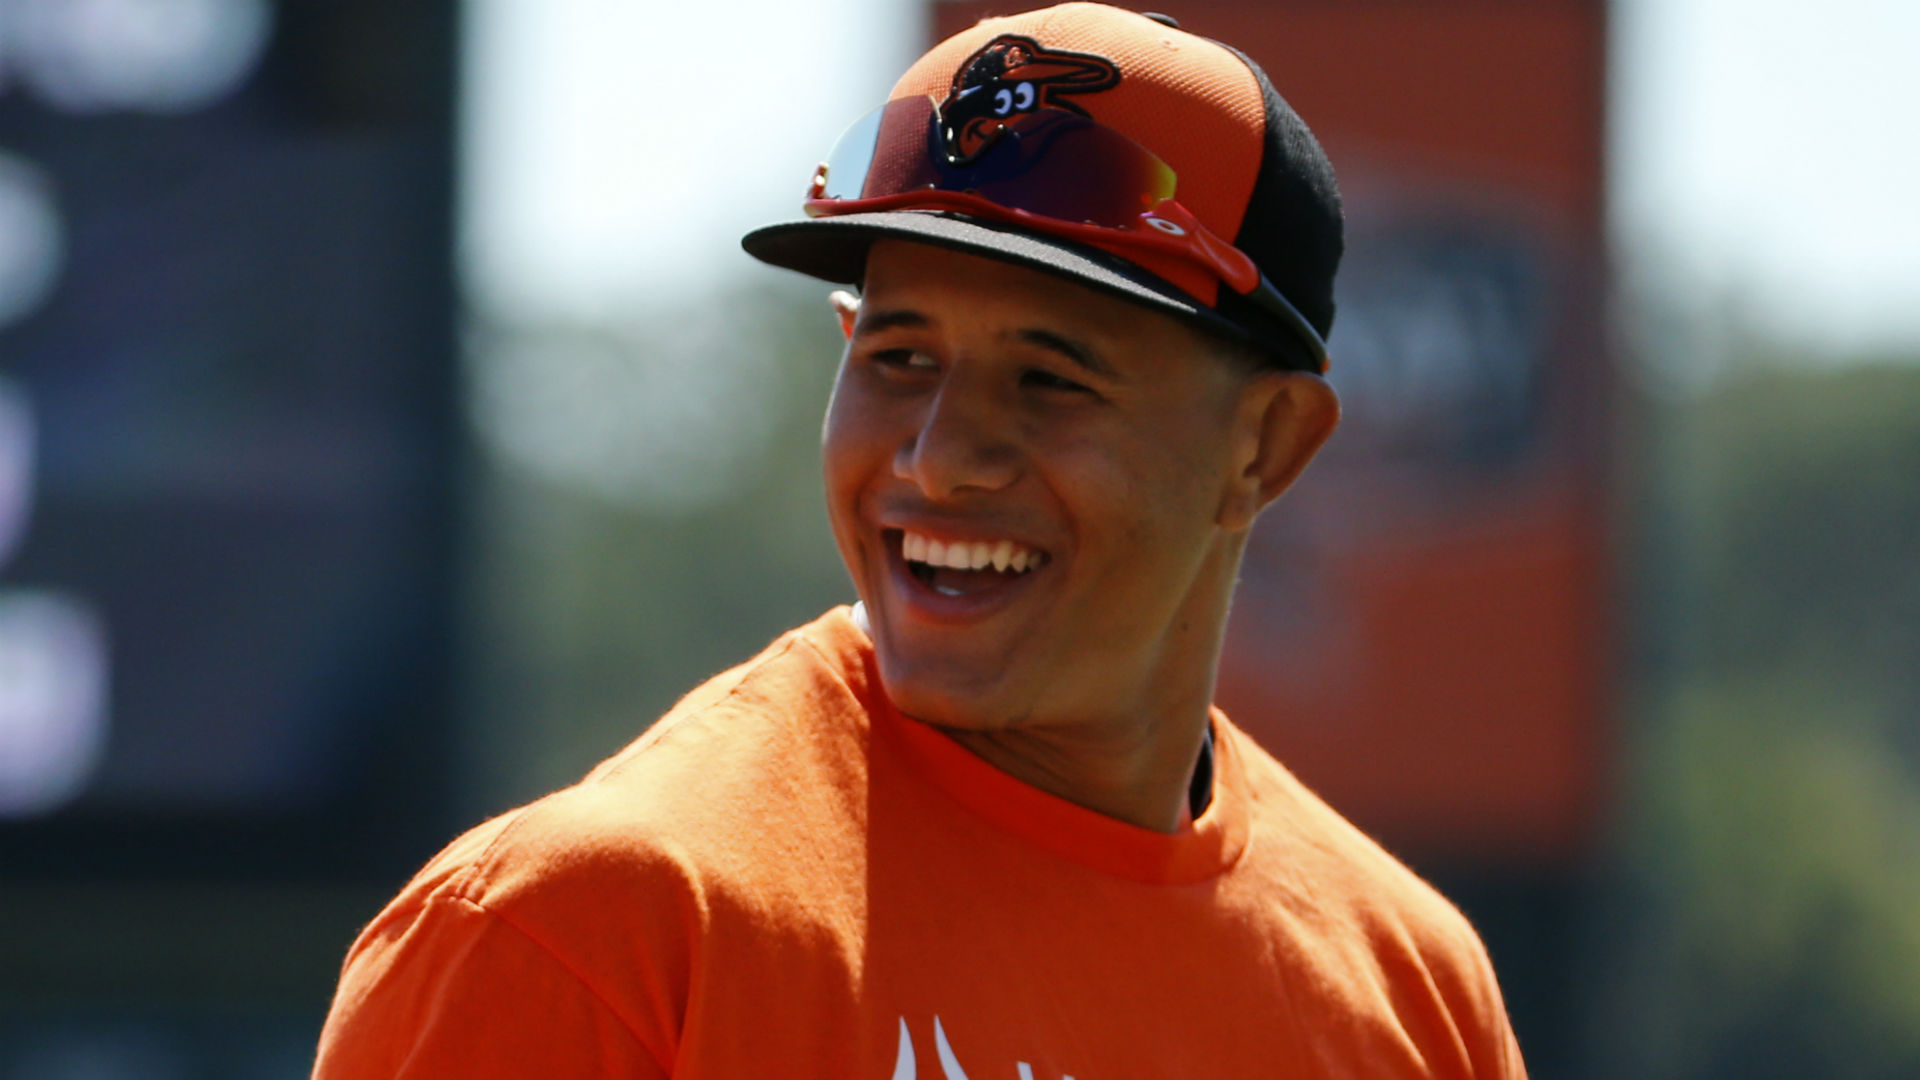 Machado has setback with his knee, opening day in doubt